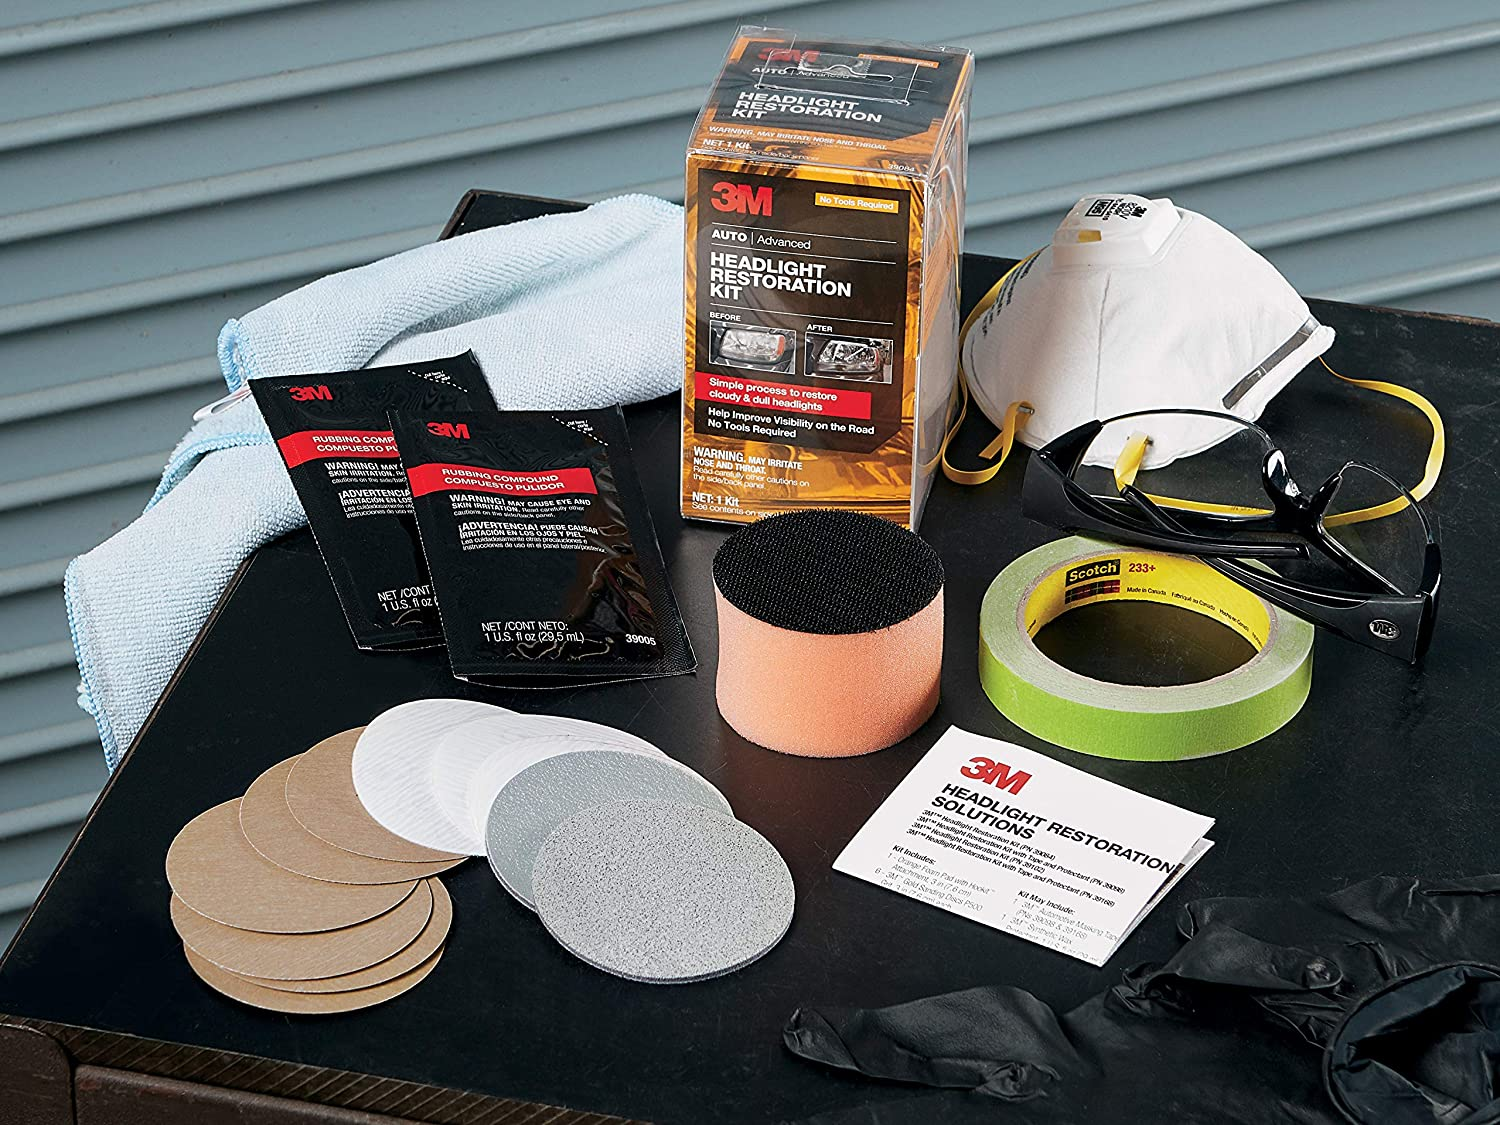 3M Headlight Restoration Kit, Simple Process to Restore Cloudy & Dull Headlights, Hand Application, 1 Kit 91H5jxcmWFL